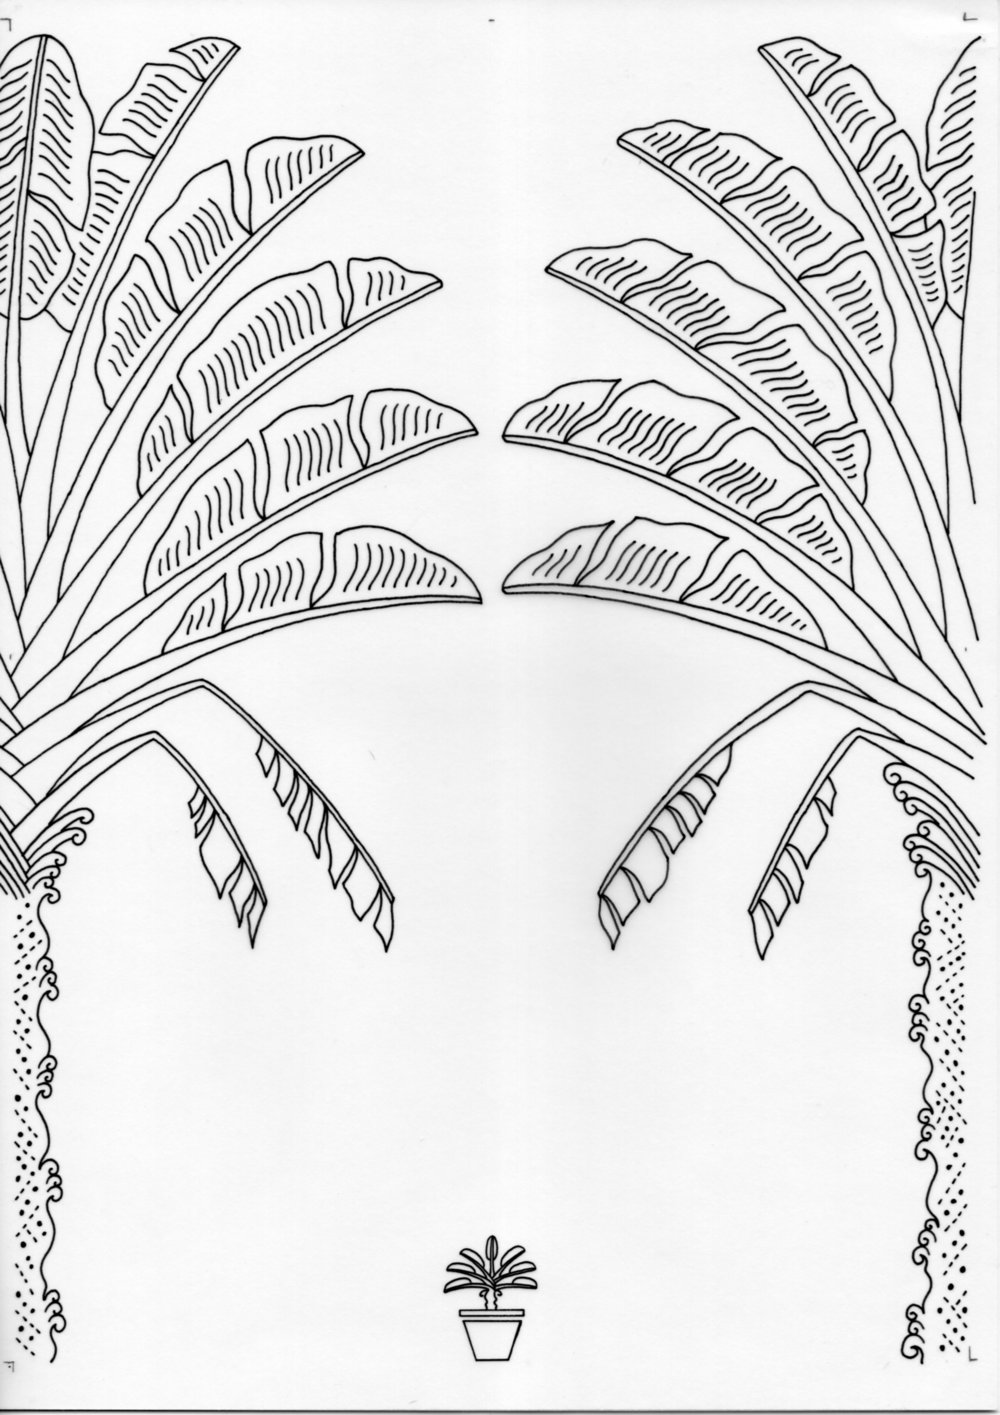 Pygmy Traveller's Palm – Inked Drawings